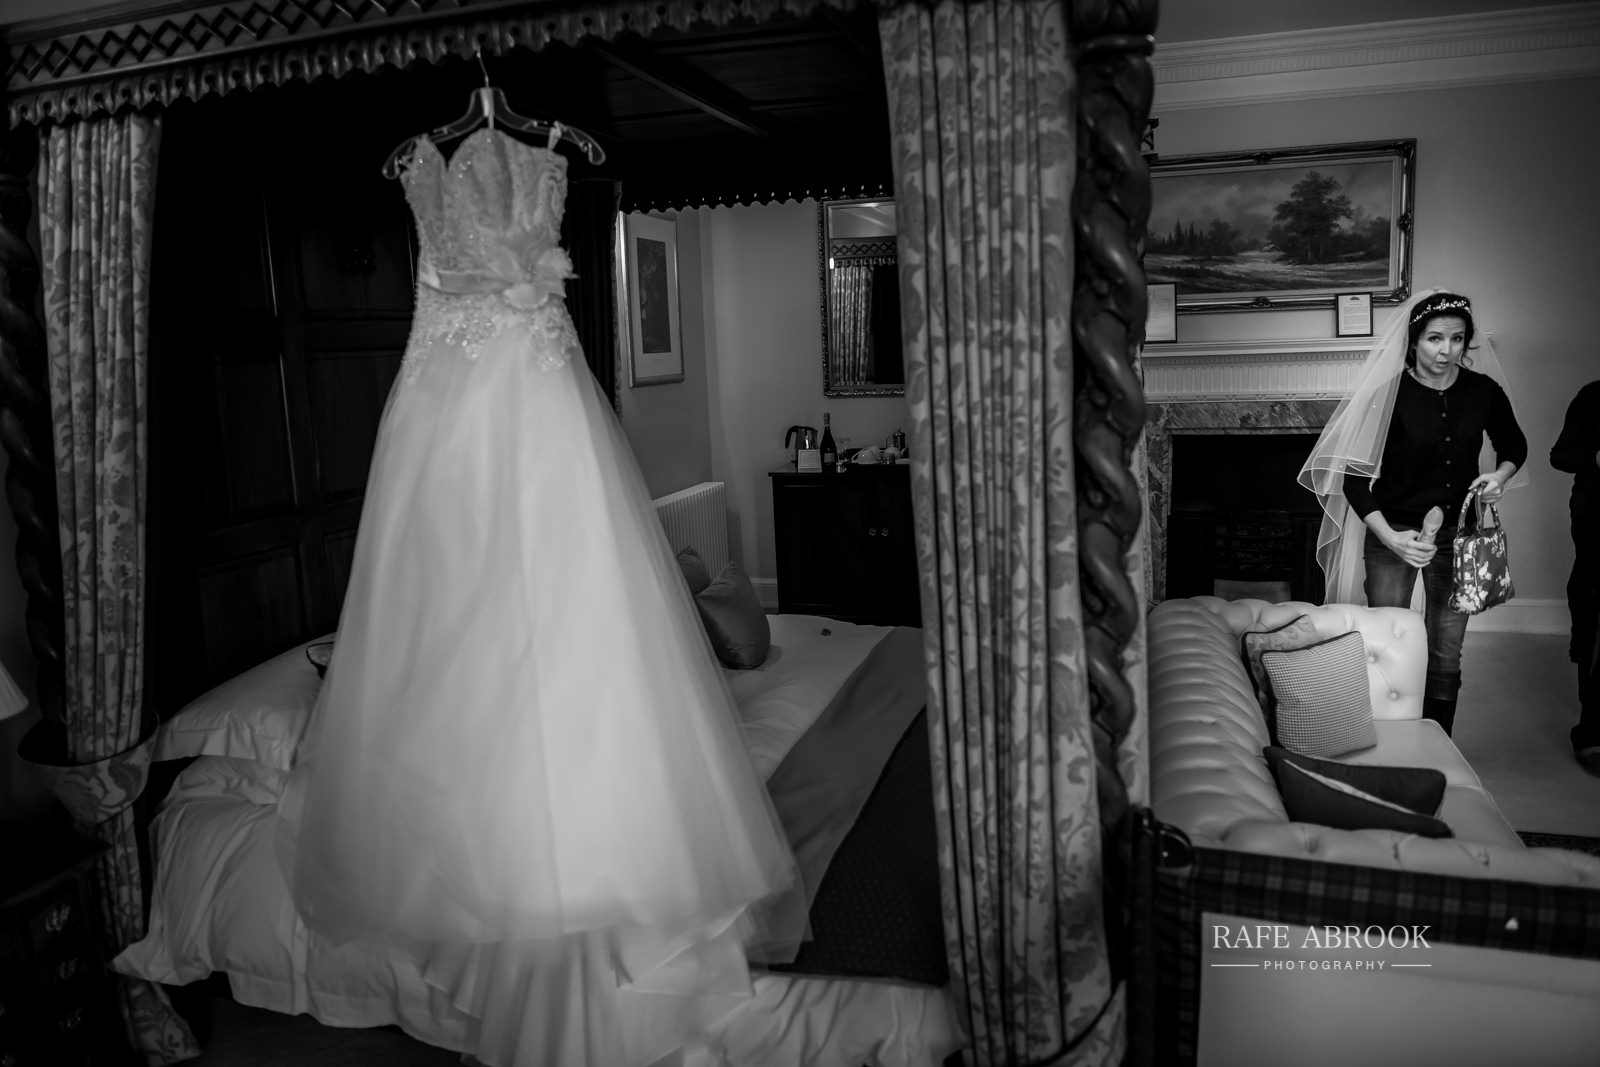 goldsborough hall wedding harrogate knaresborough yorkshire hertfordshire wedding photographer-1010.jpg